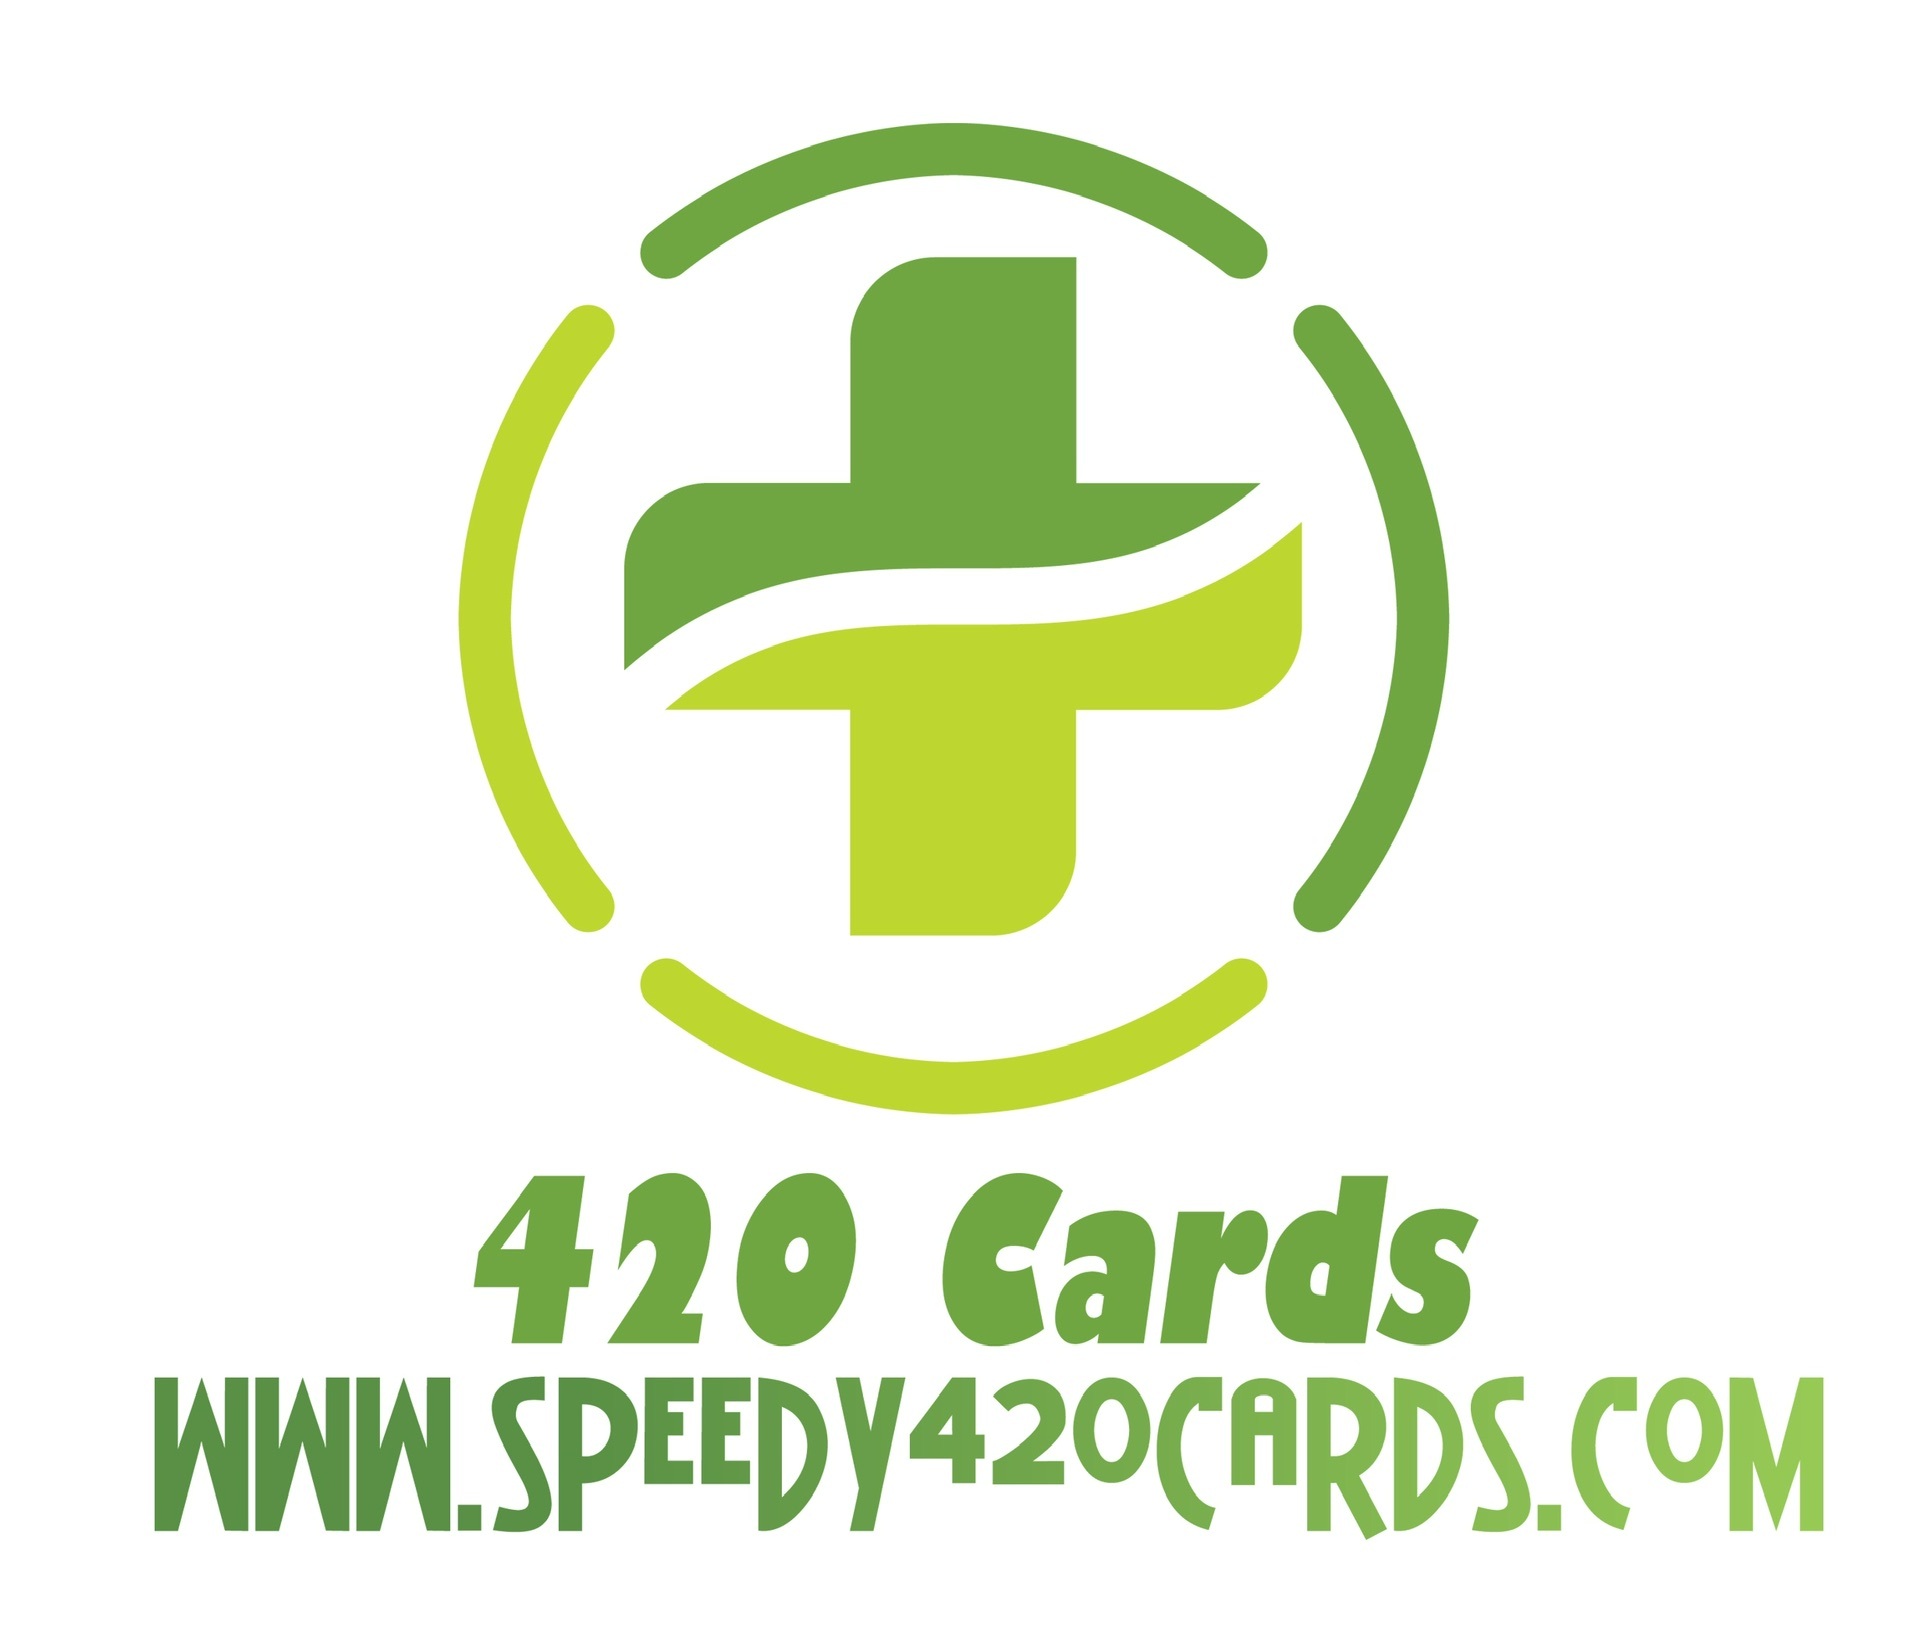 Speedy 420 Cards reviews, opinions and consumer feedback